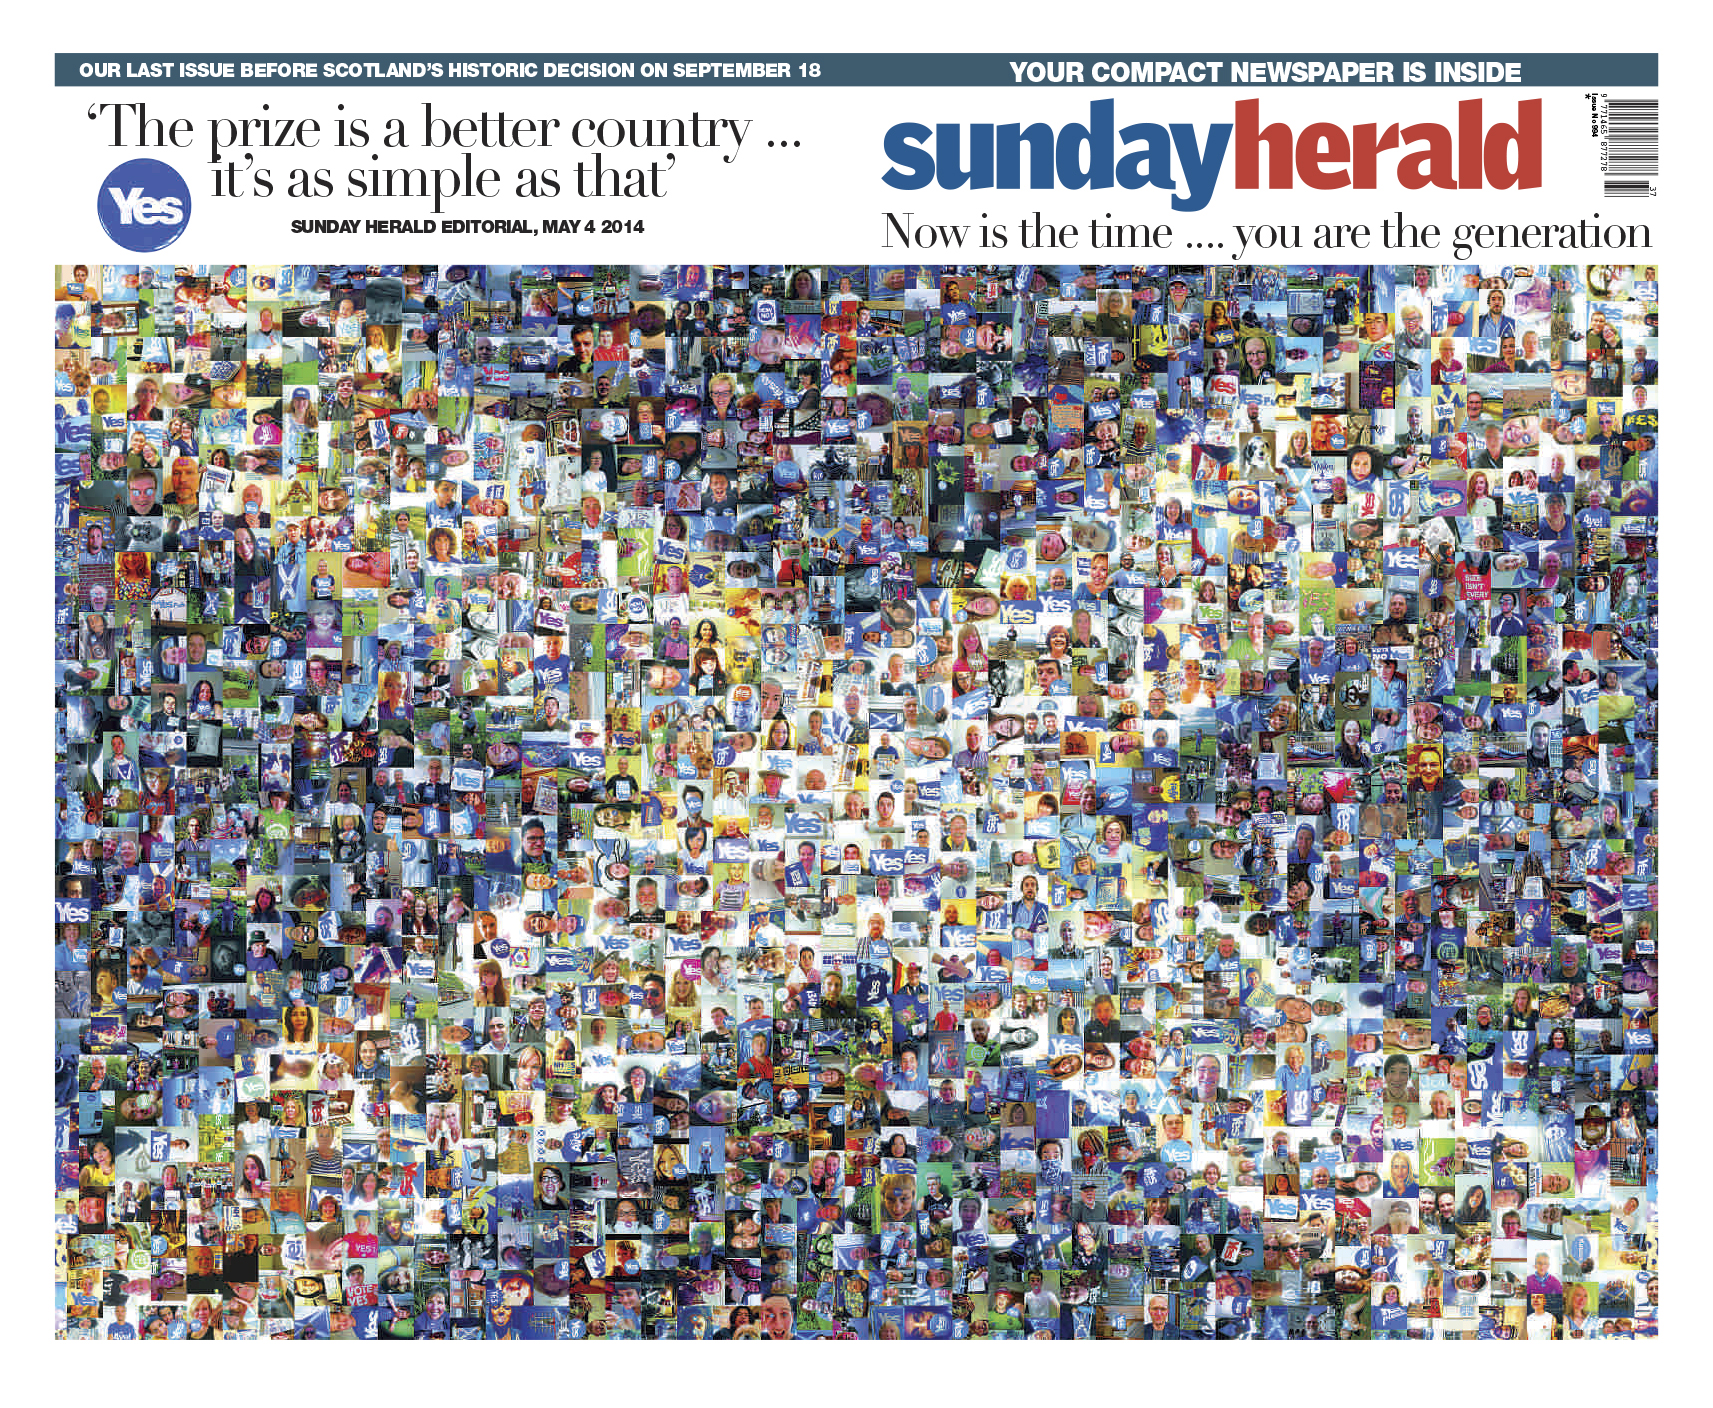 The Sunday Herald's cover the weekend before the 2014 independence referendum